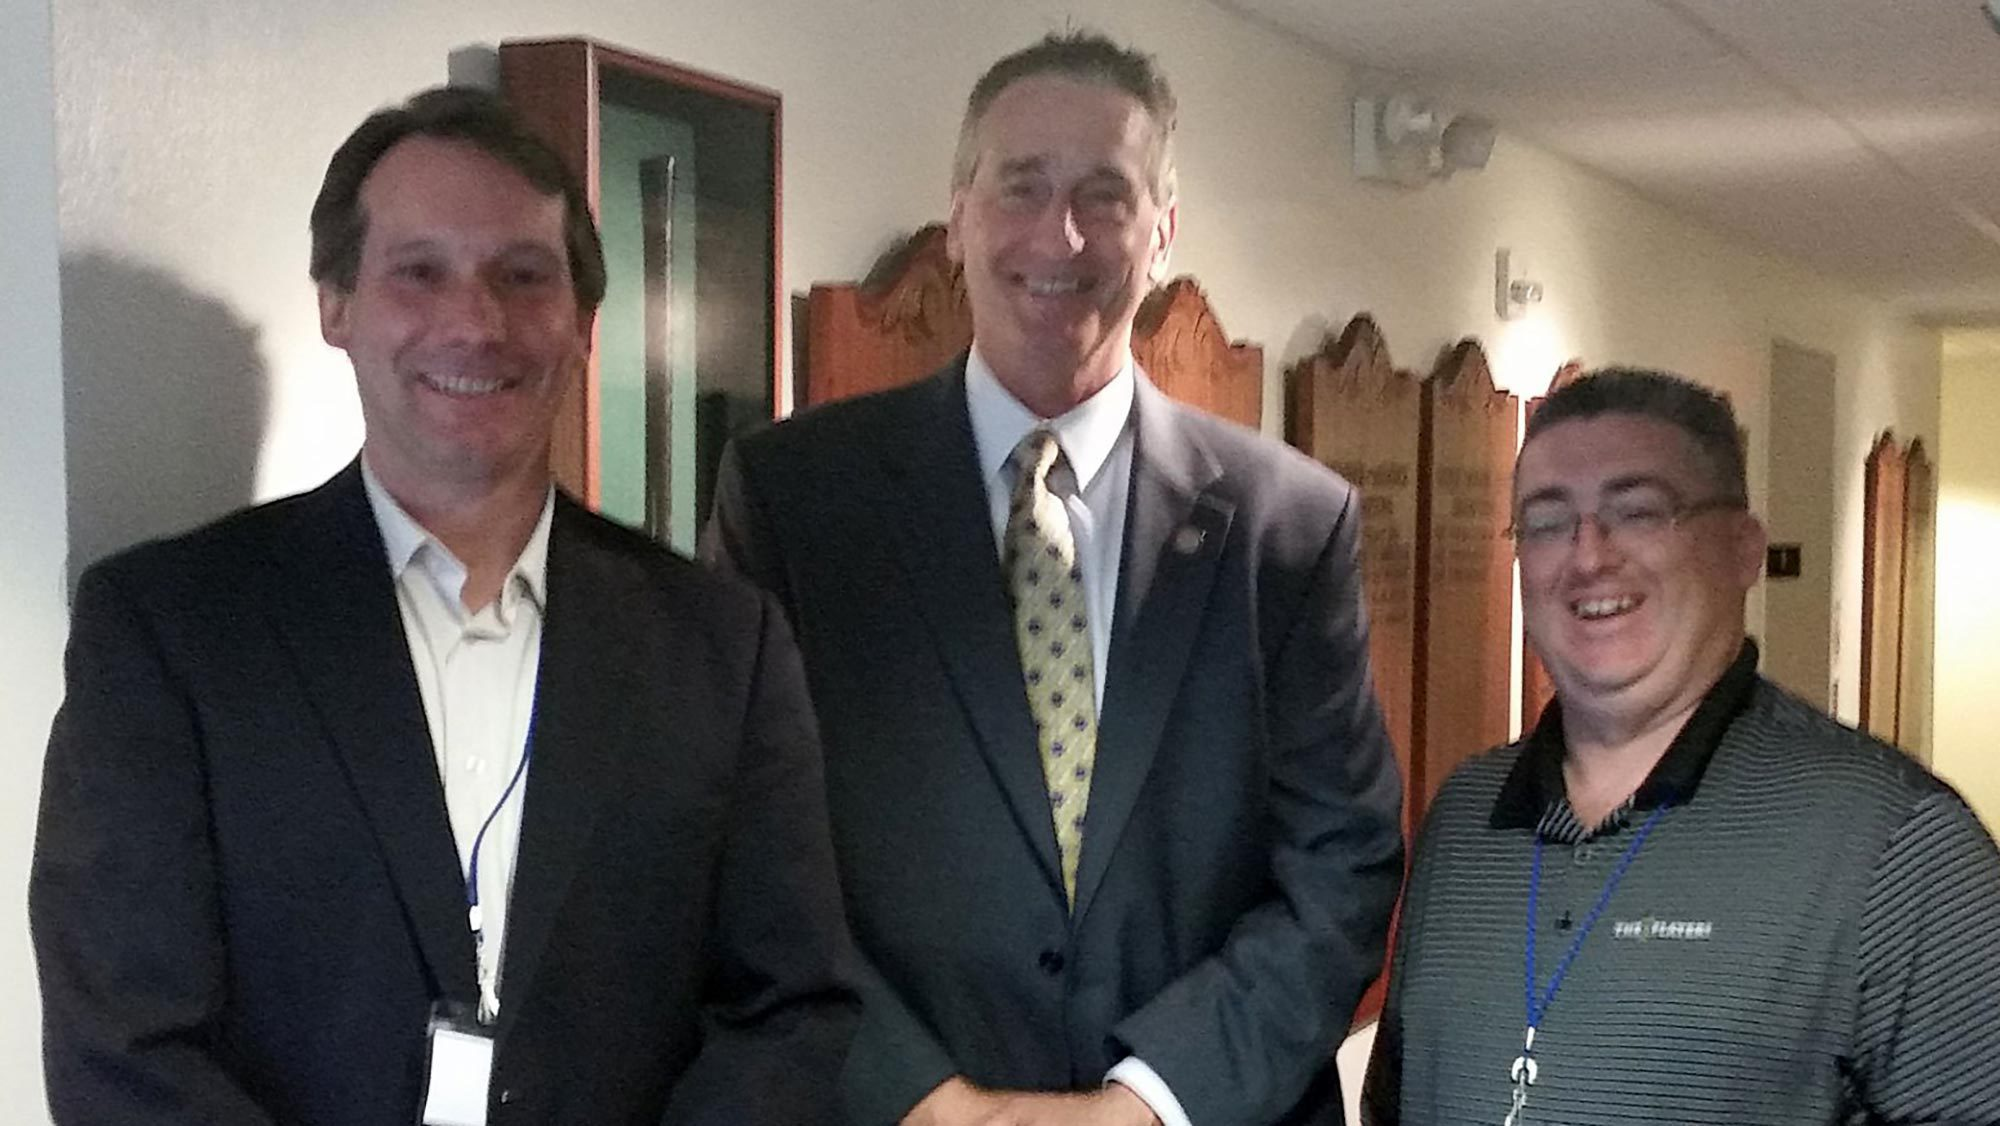 Keynote speaker, Robert Duffy, former Lieutenant Governor of New York (center) with Vice President of Product Strategy Shawn Ryan (right) and BCC Software President Chris Lien.